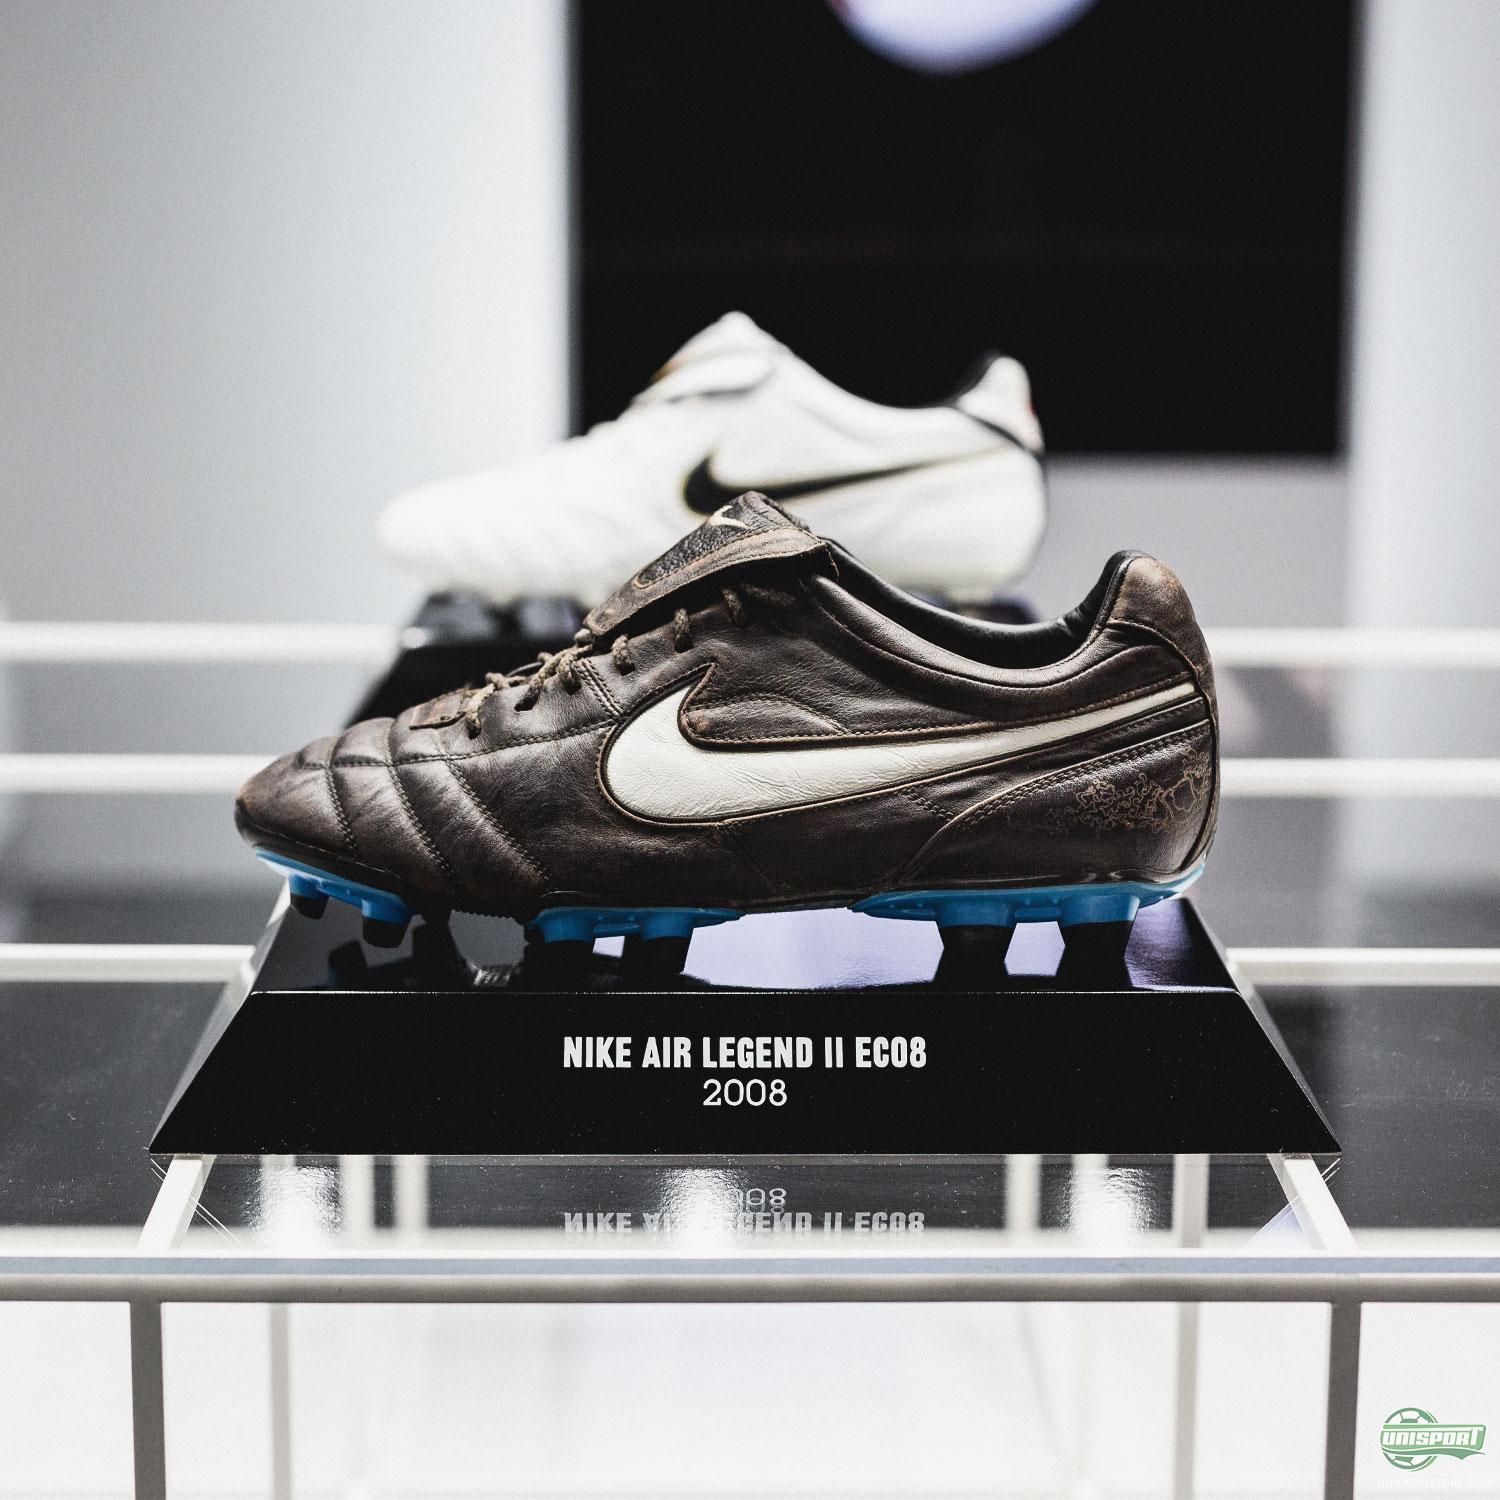 new arrival 80d82 748fd A trip down memory lane - History of the Nike Tiempo collection